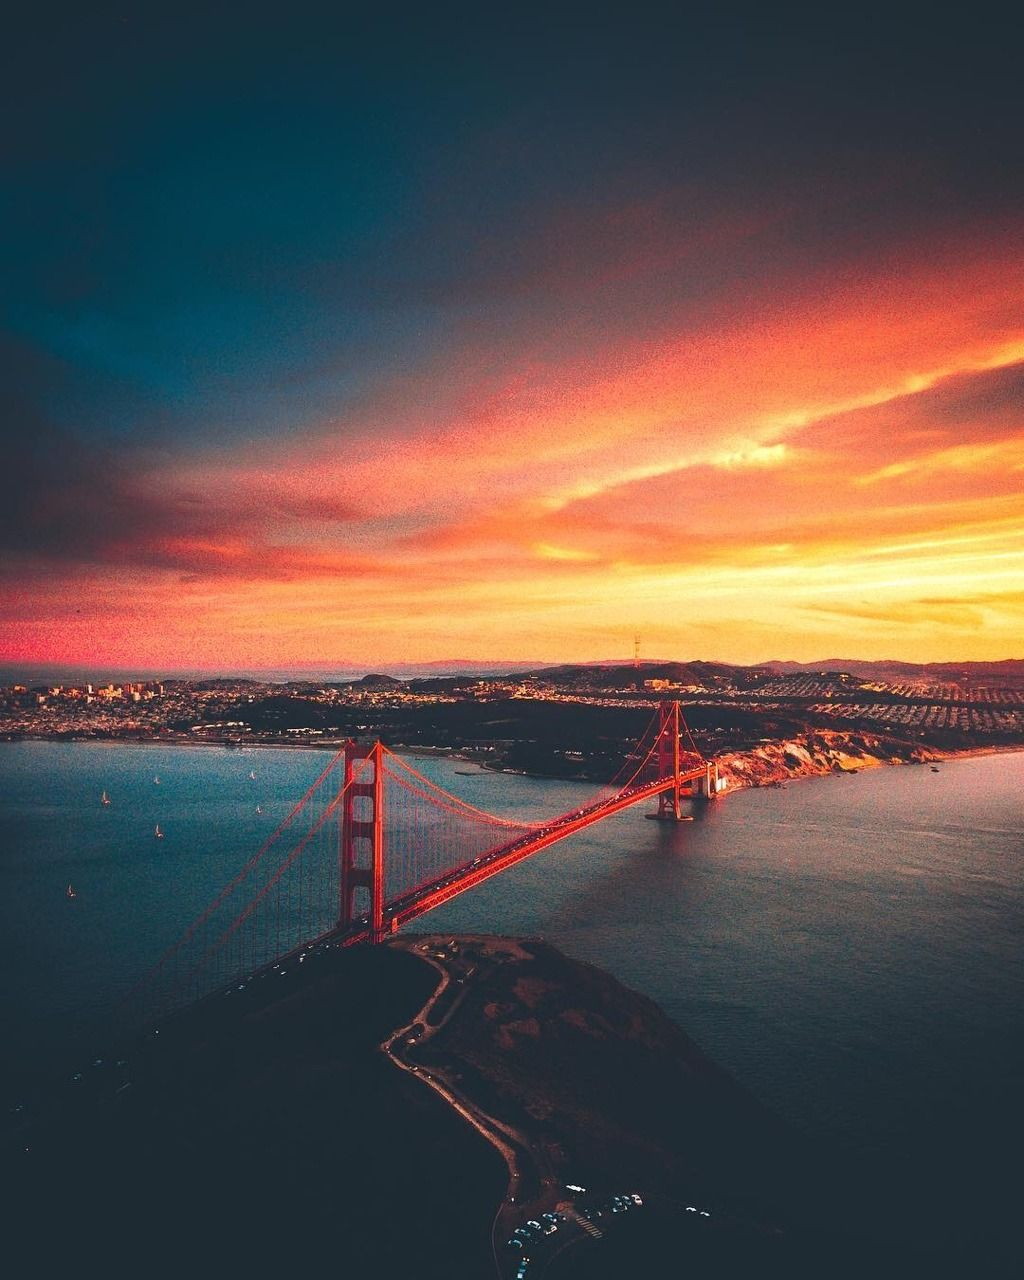 Golden Sunset by Manny Estrada #sanfrancisco #sf #bayarea #alwayssf #goldengatebridge #goldengate #alcatraz #california